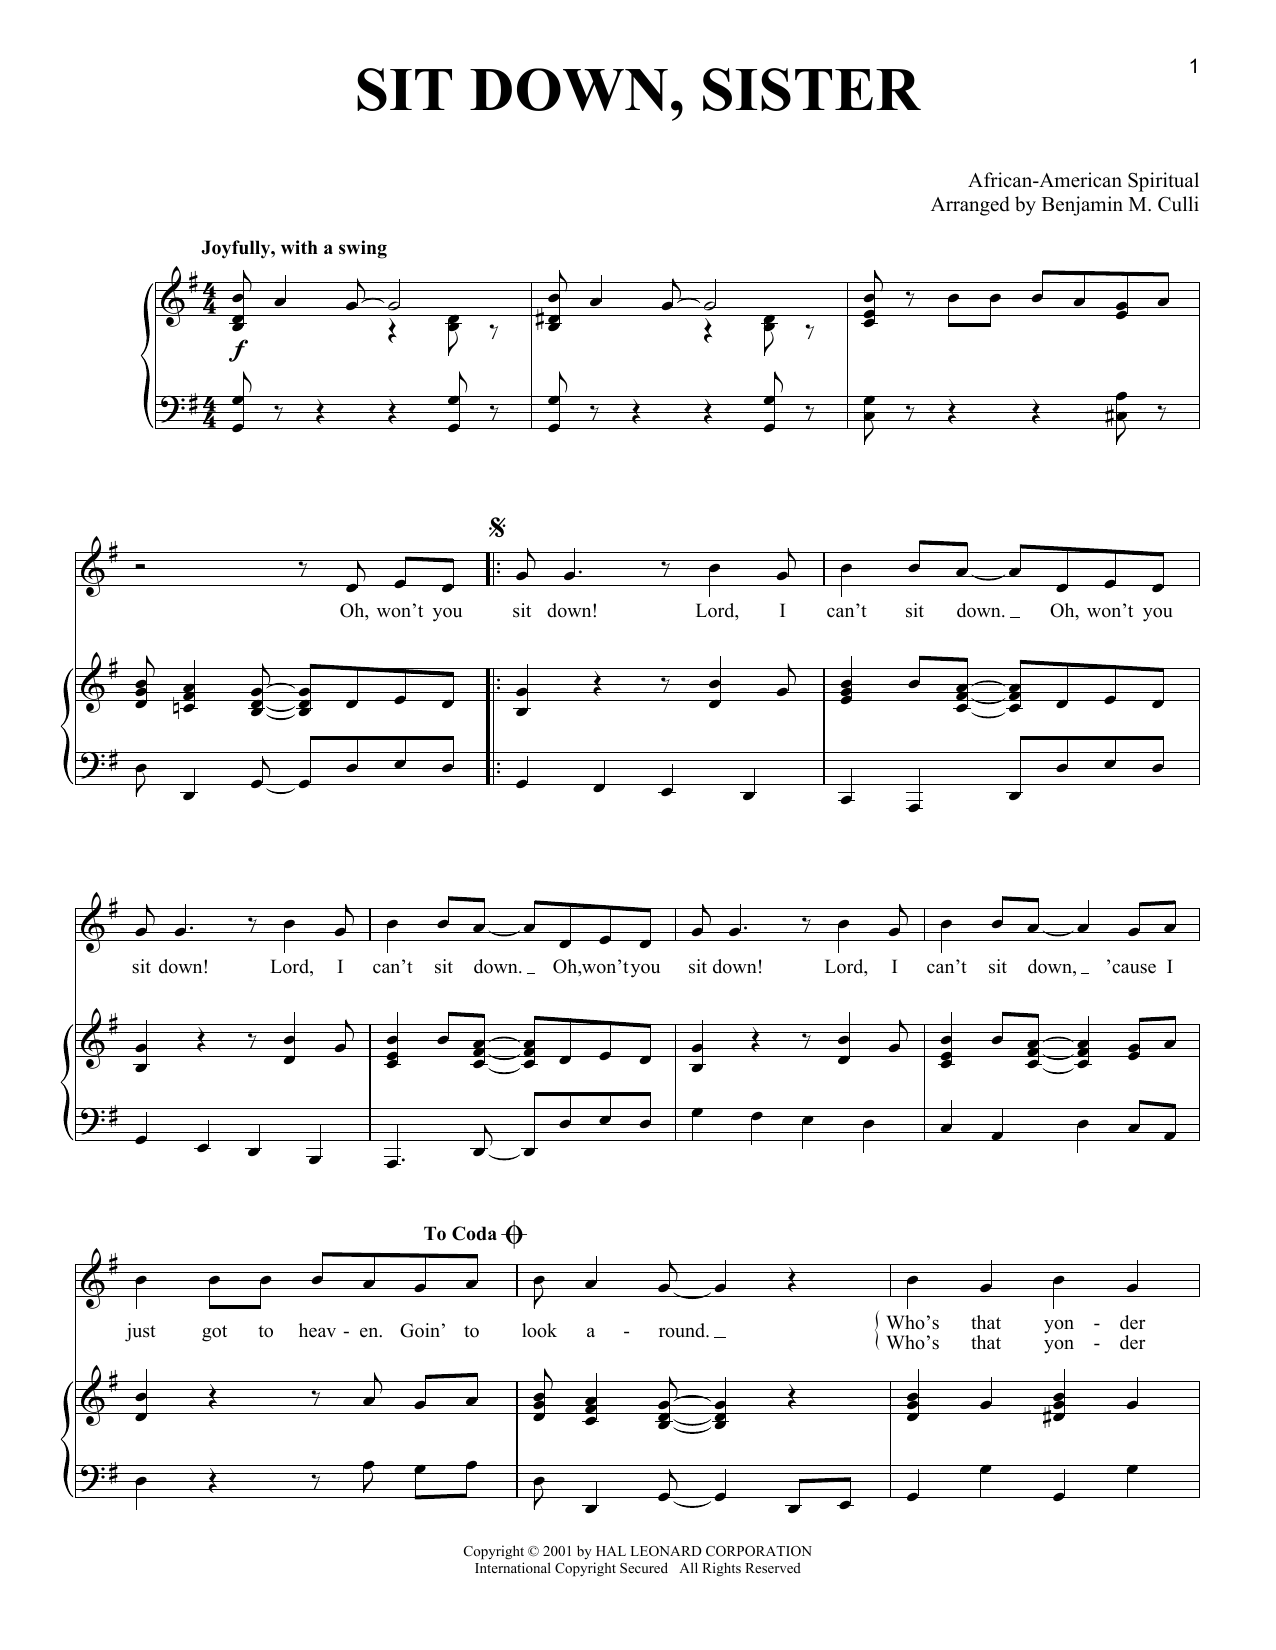 African-American Spiritual Sit Down, Sister sheet music notes and chords. Download Printable PDF.